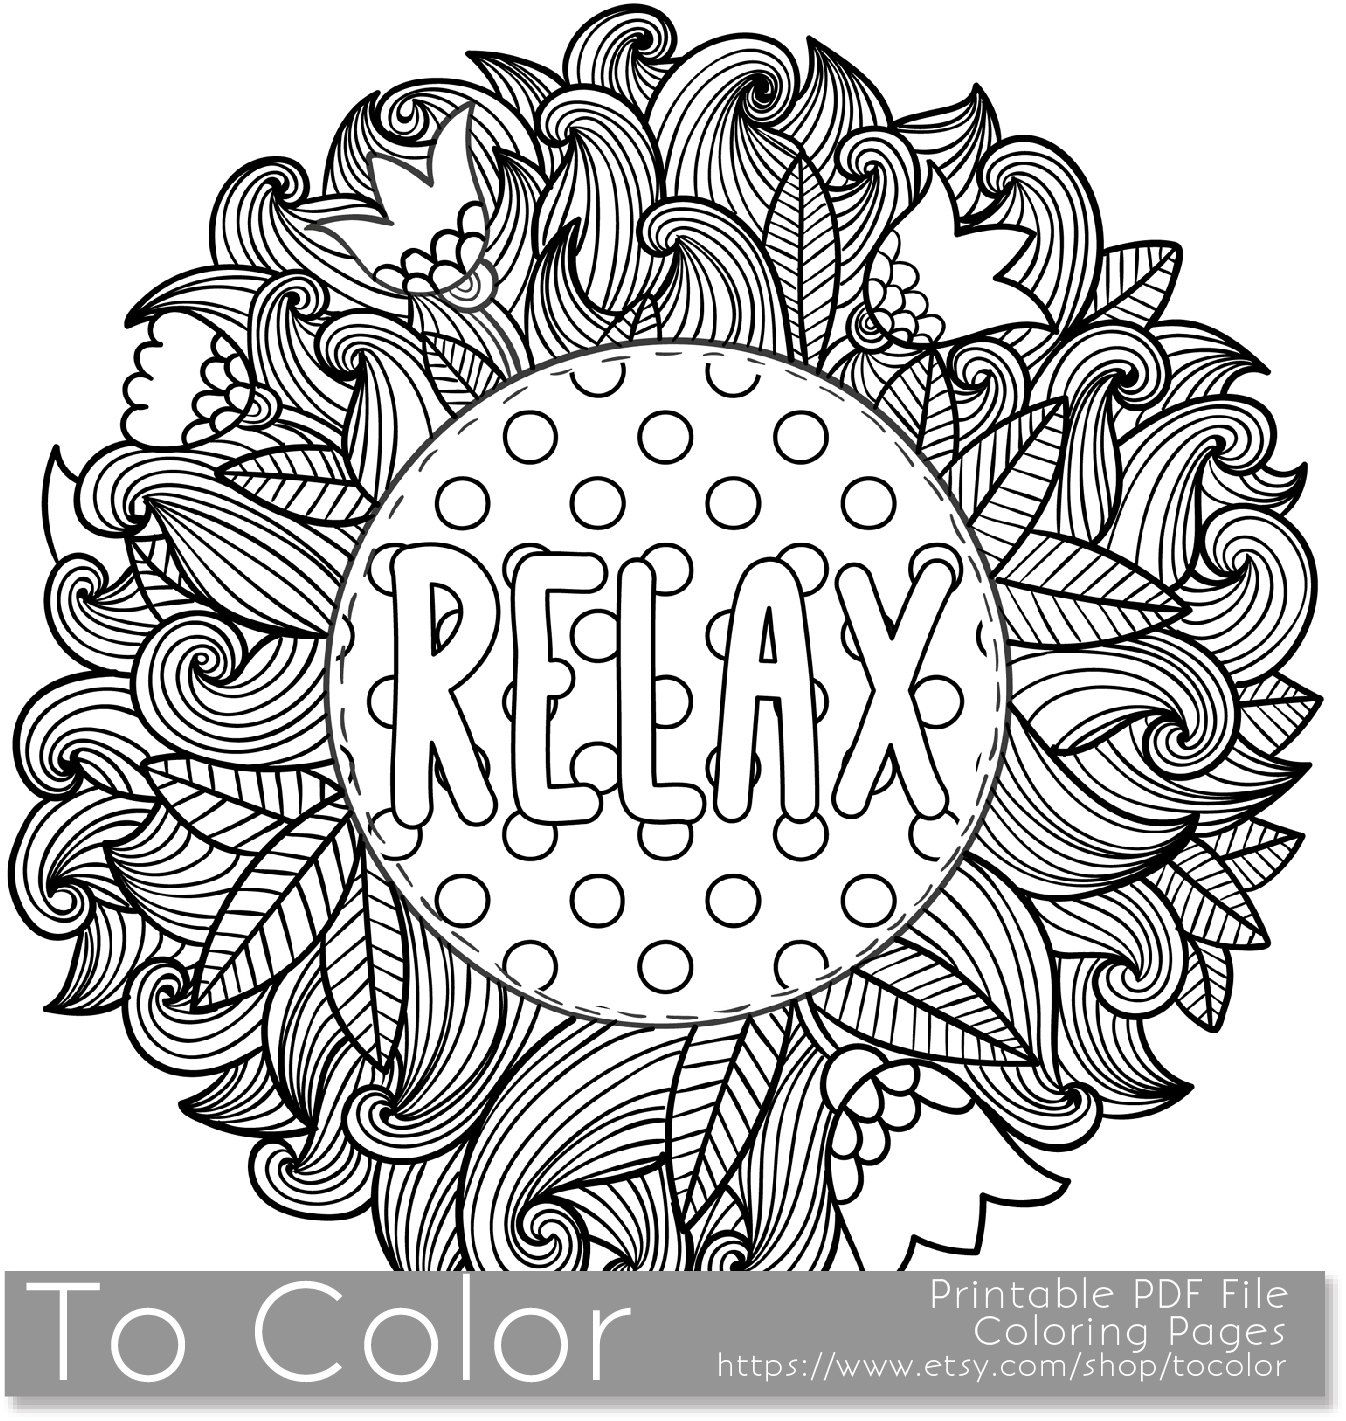 Printable Relax Coloring Page for Adults, PDF / JPG